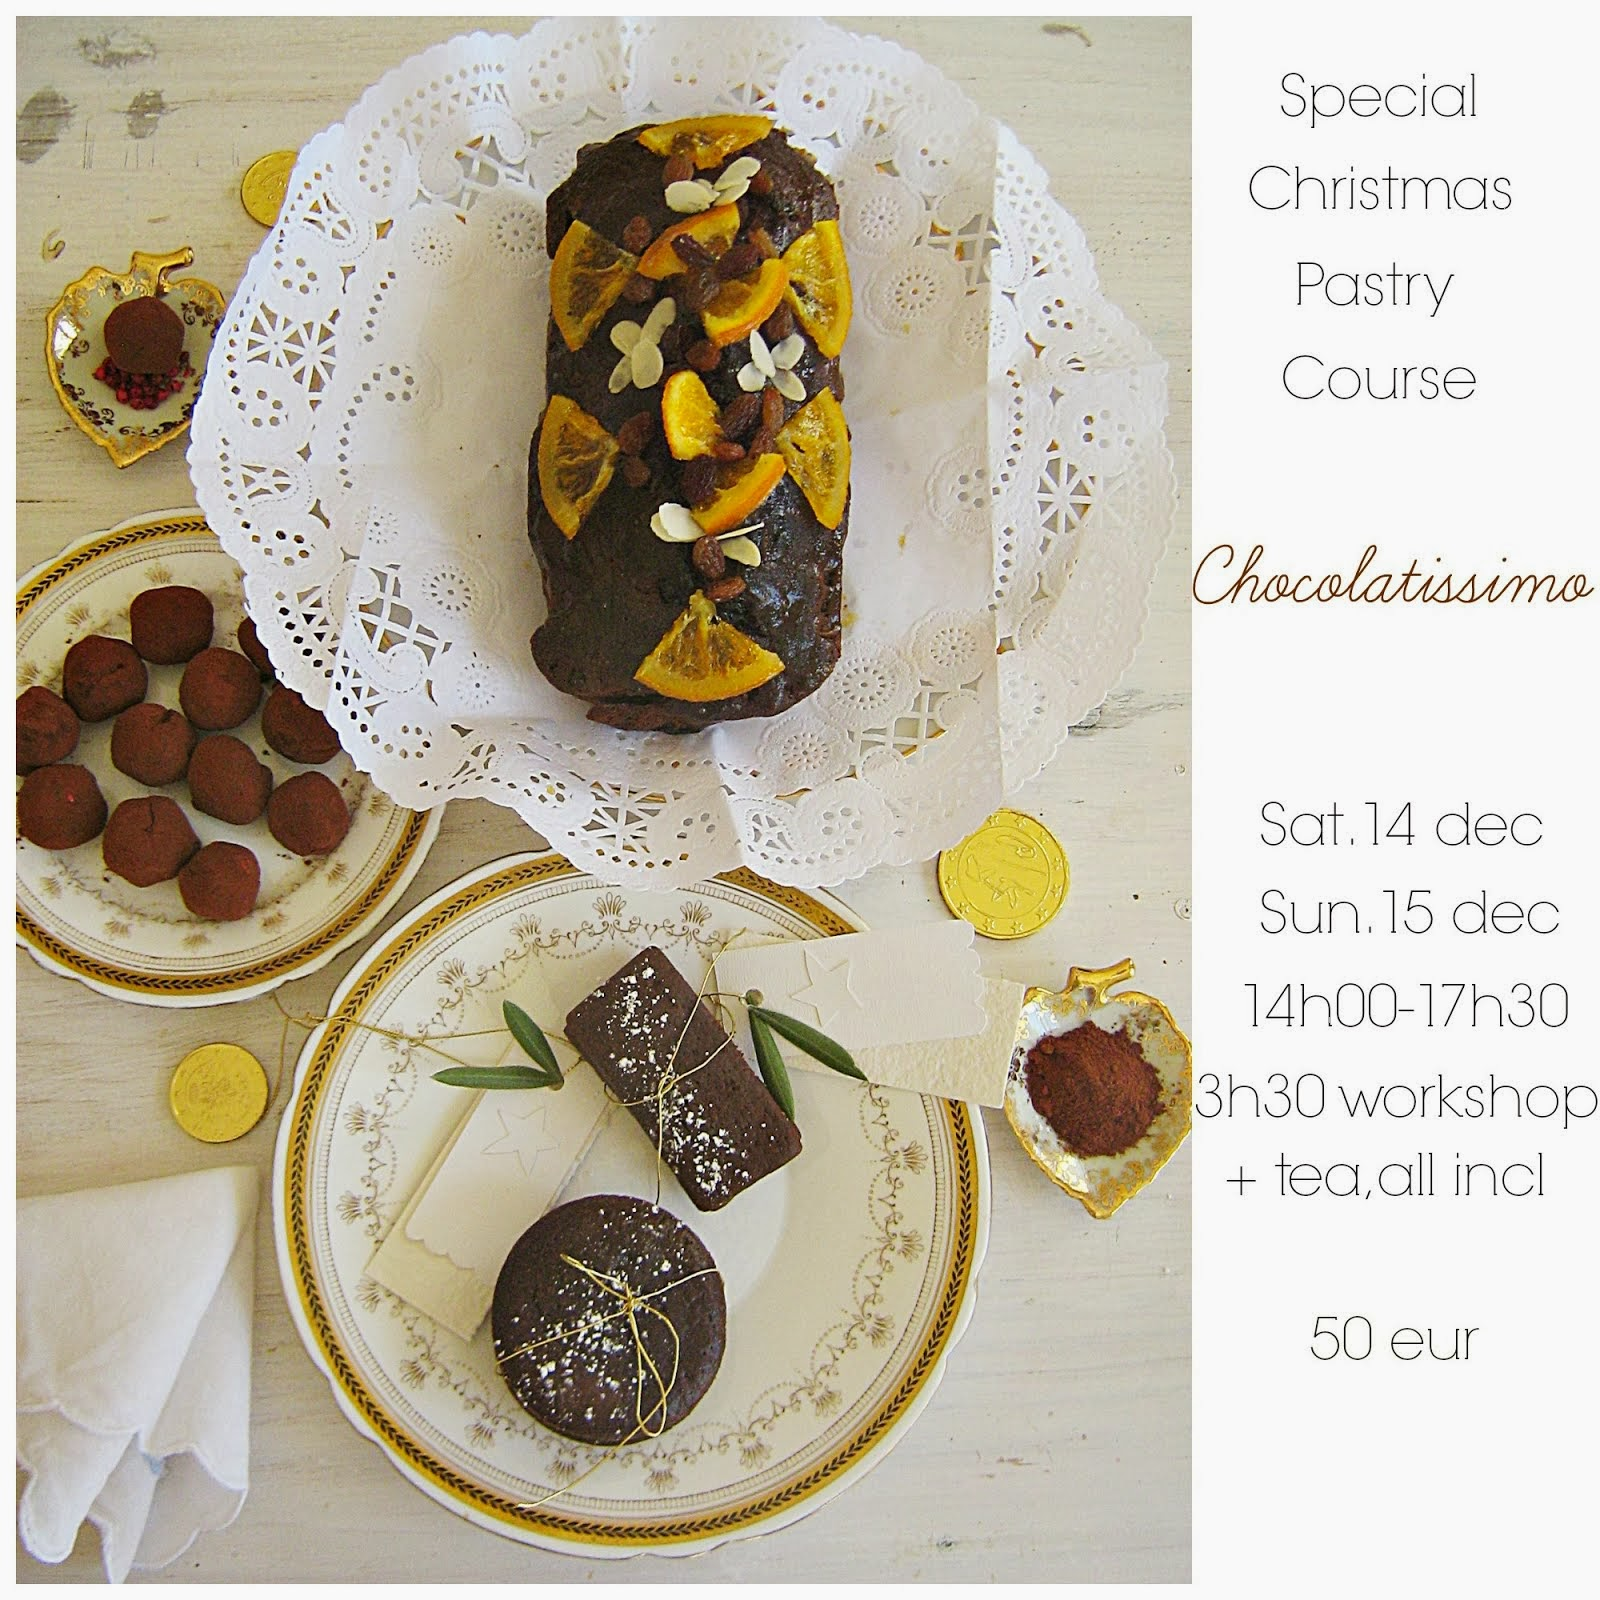 CHOCOLATISSIMO Pastry workshop  in Holland, sat dec 14 & sun dec 15